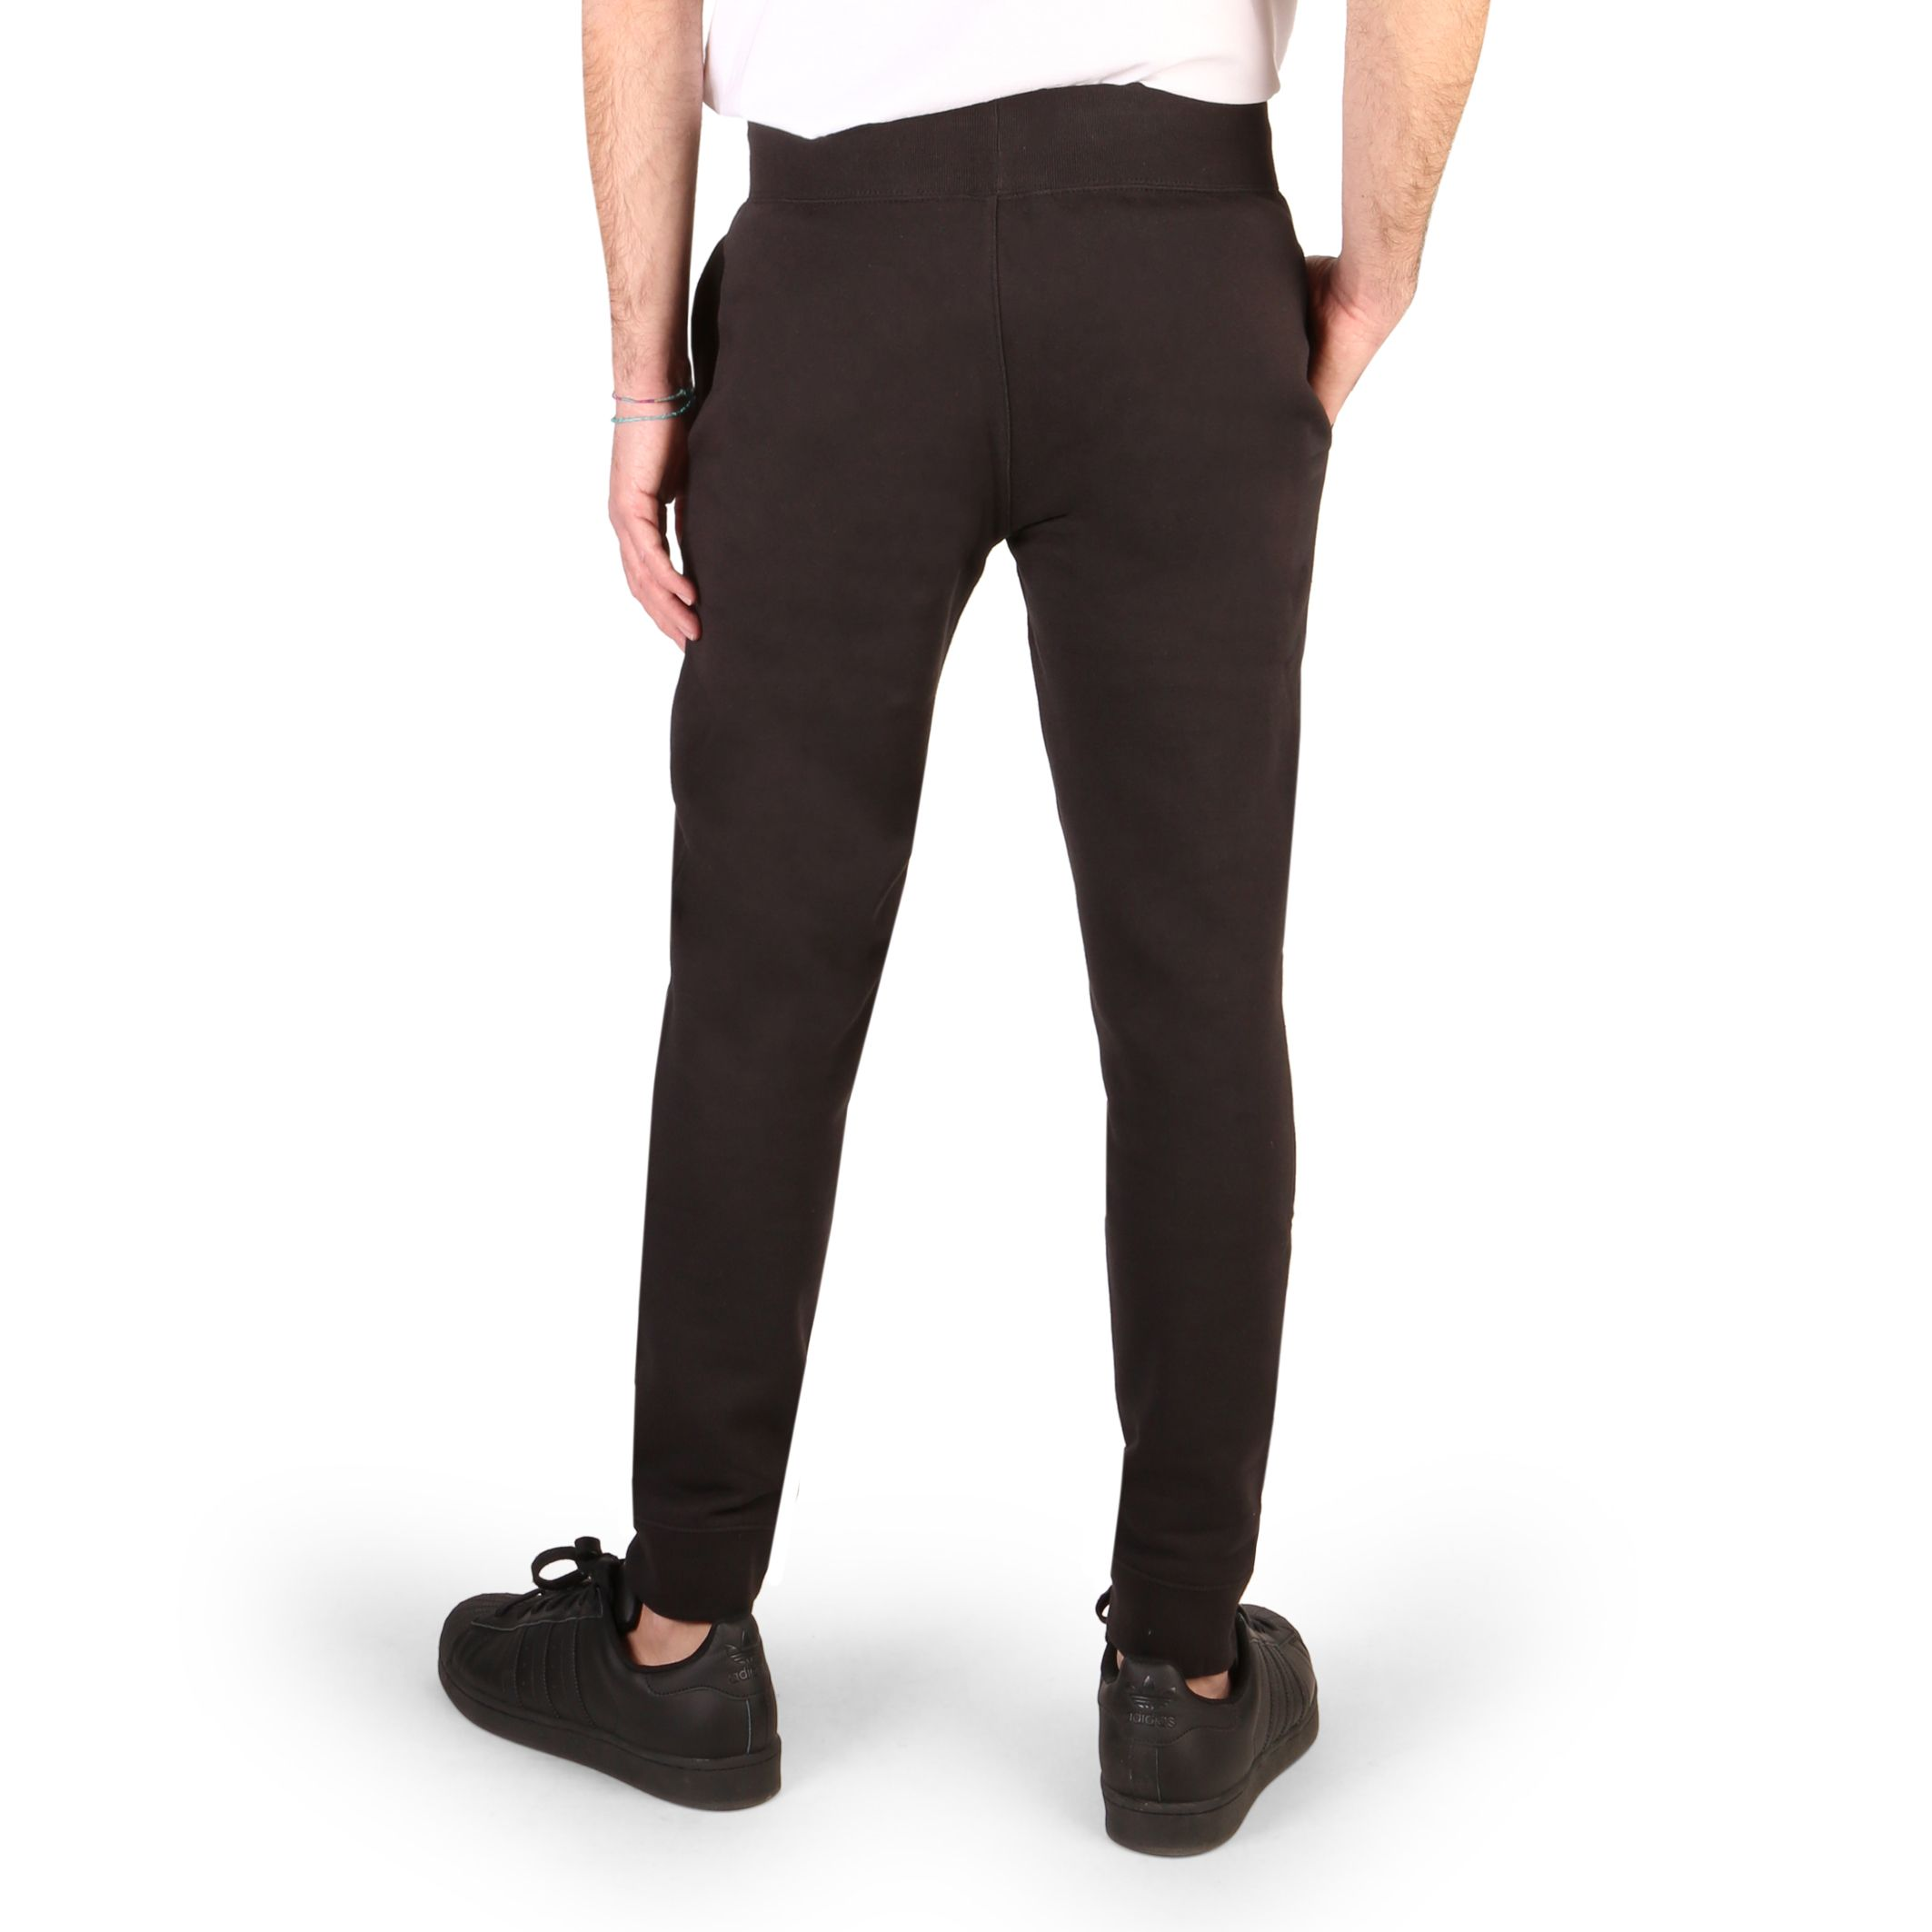 Pantalon de jogging Champion – 213515